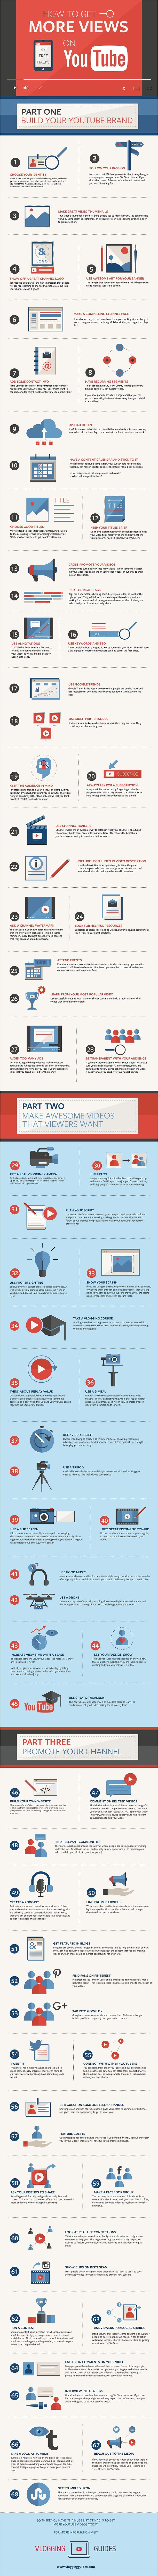 68 Ways to Get More Views on YouTube [Infographic]